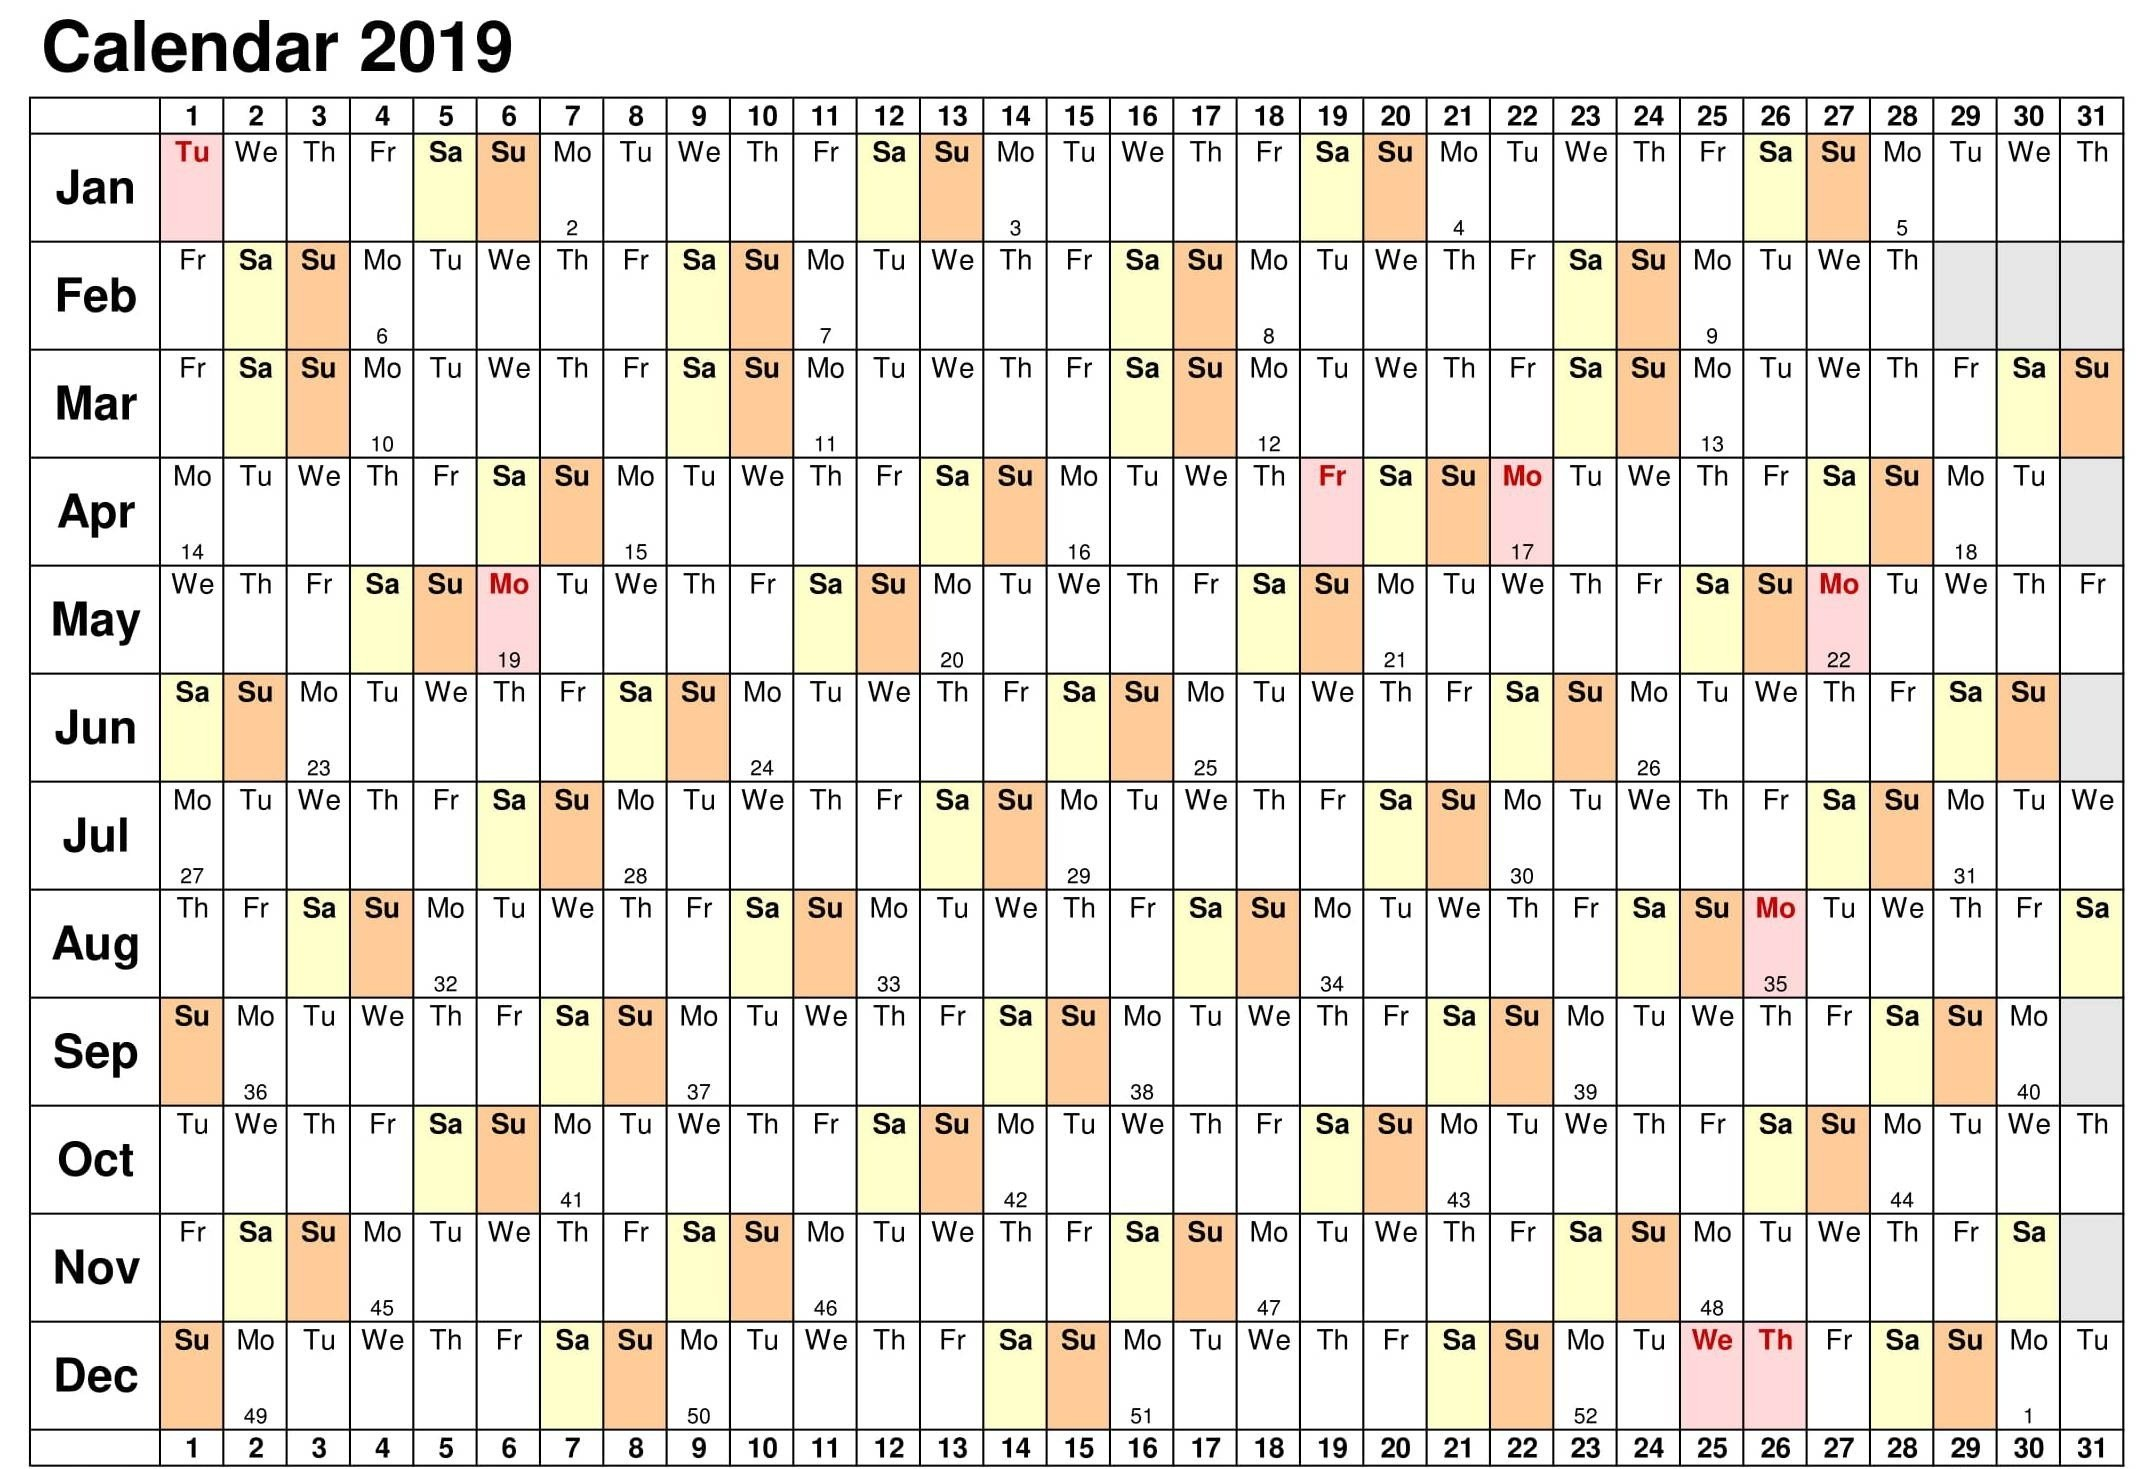 Kalender 2019 Excel Download Kostenlos Más Recientemente Liberado Calendar Editable Excel Of Kalender 2019 Excel Download Kostenlos Más Recientemente Liberado Calendar Editable Excel